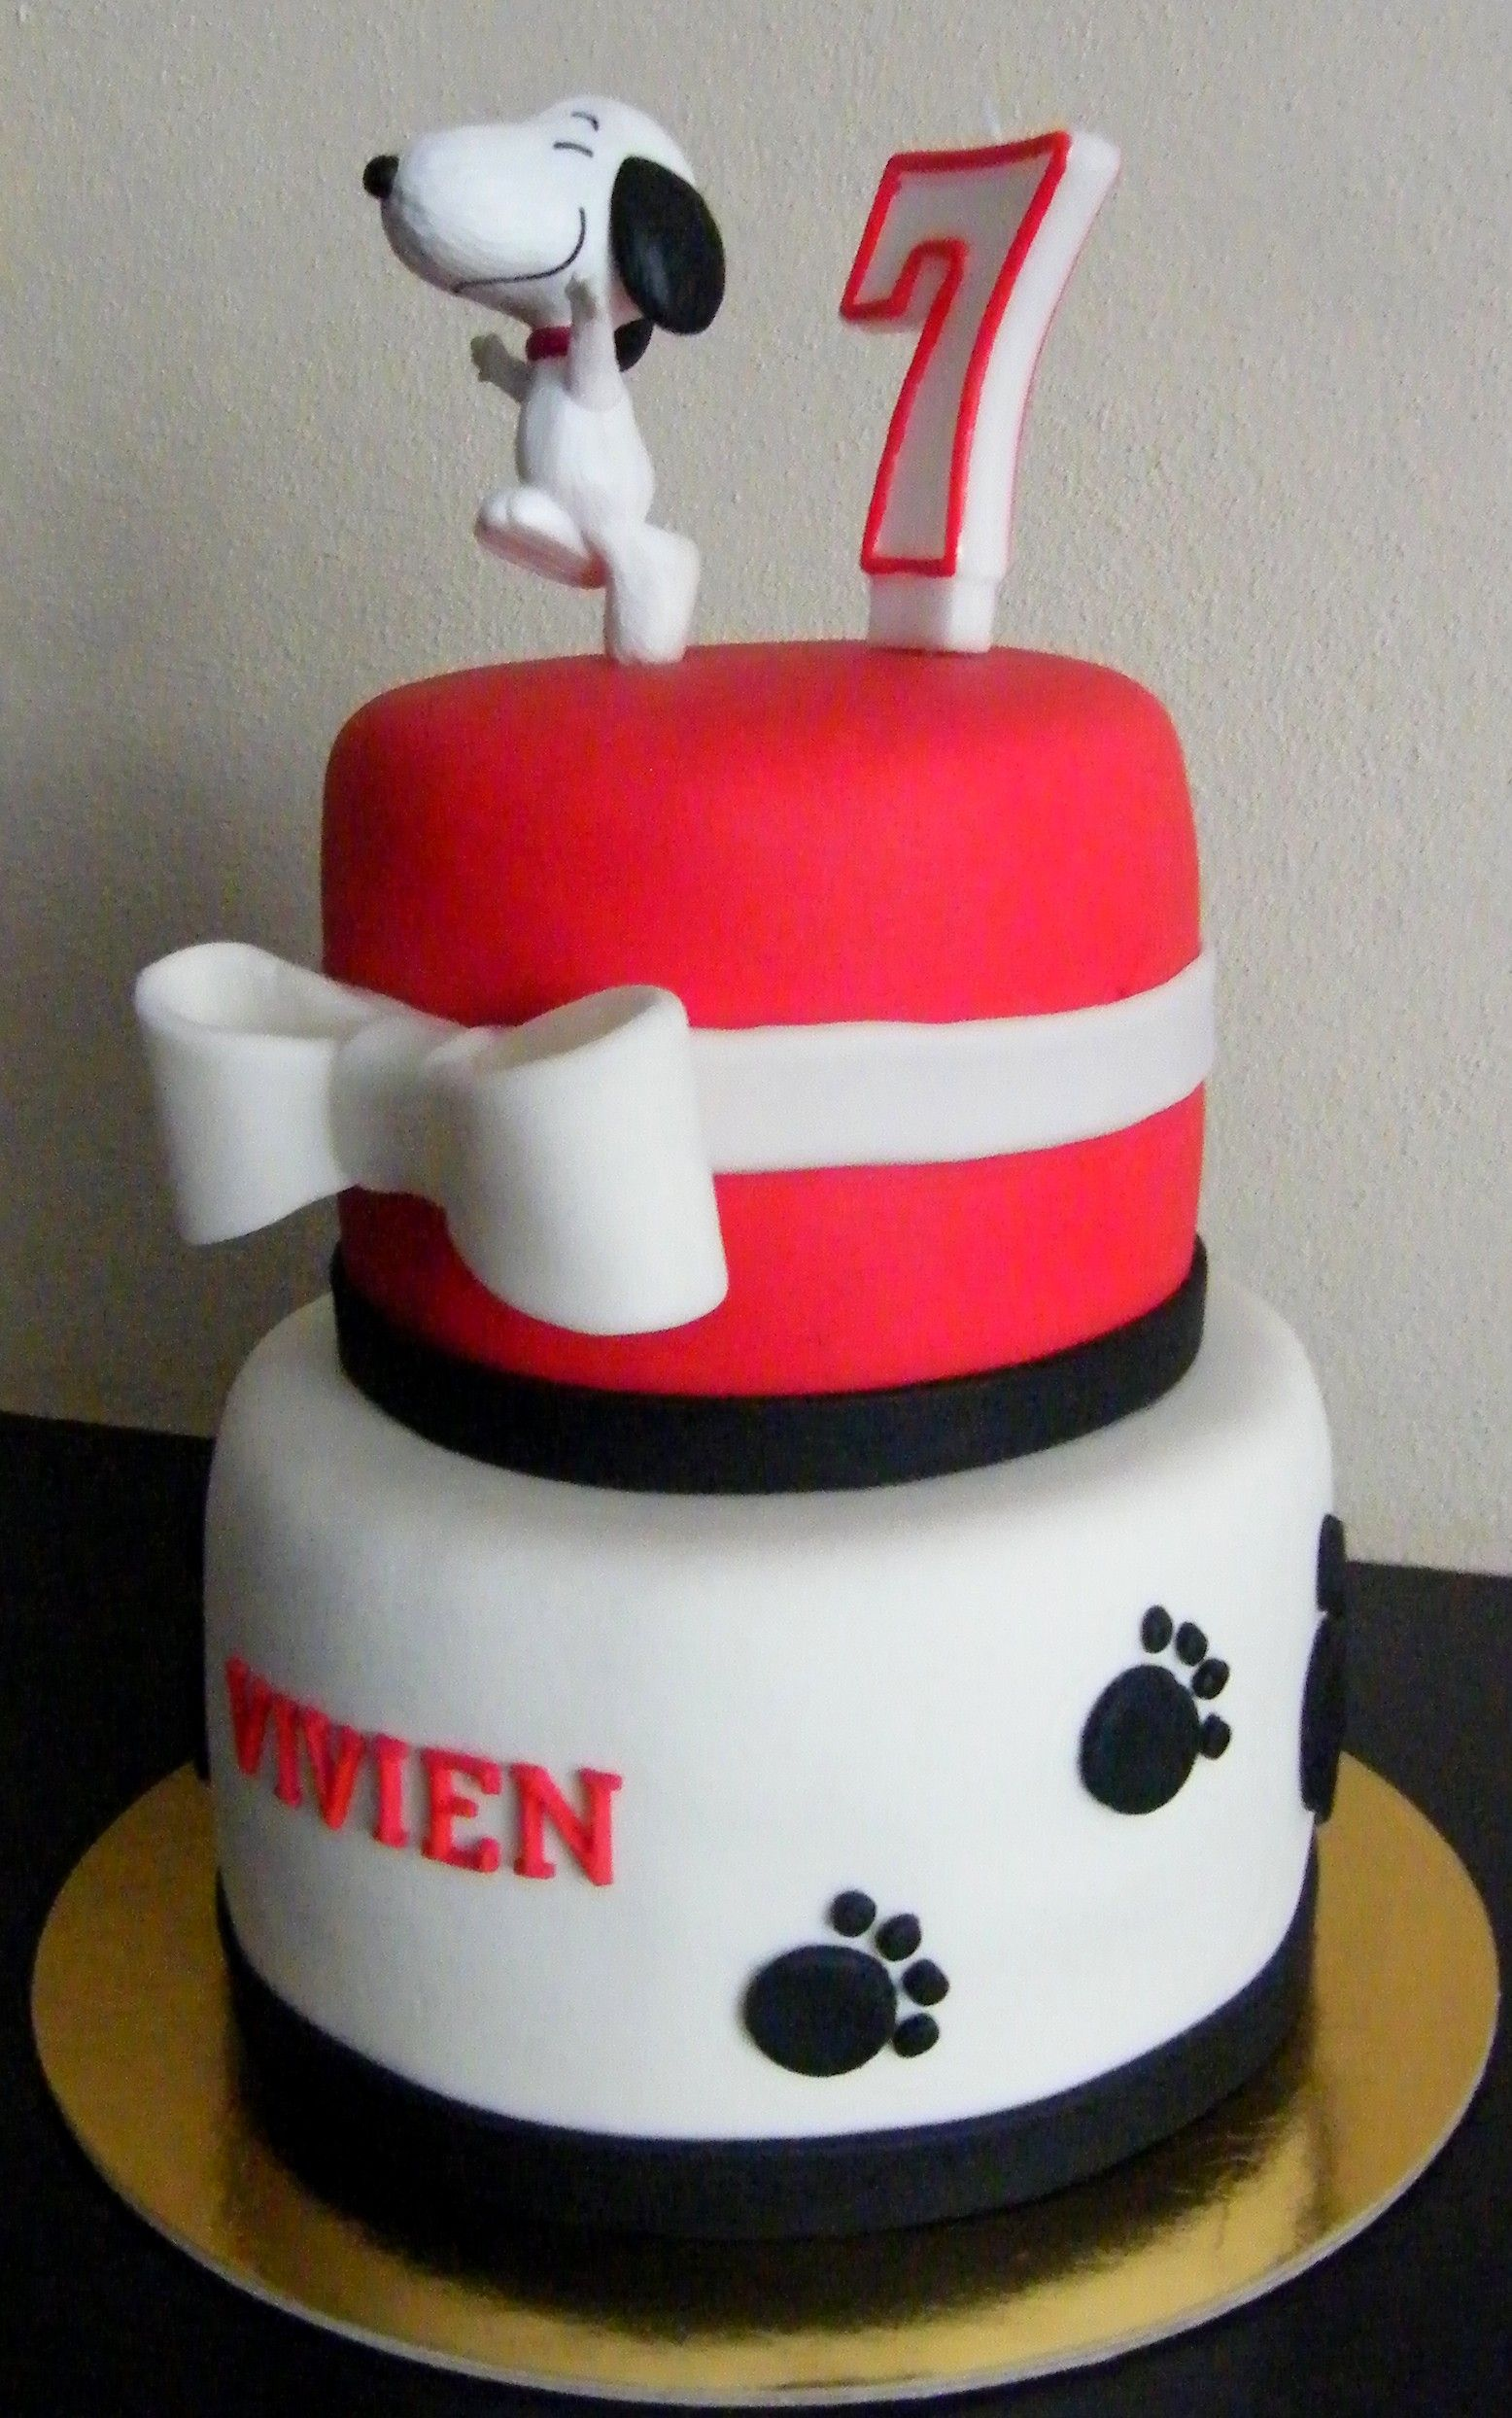 Snoopy Cakes 7 Years